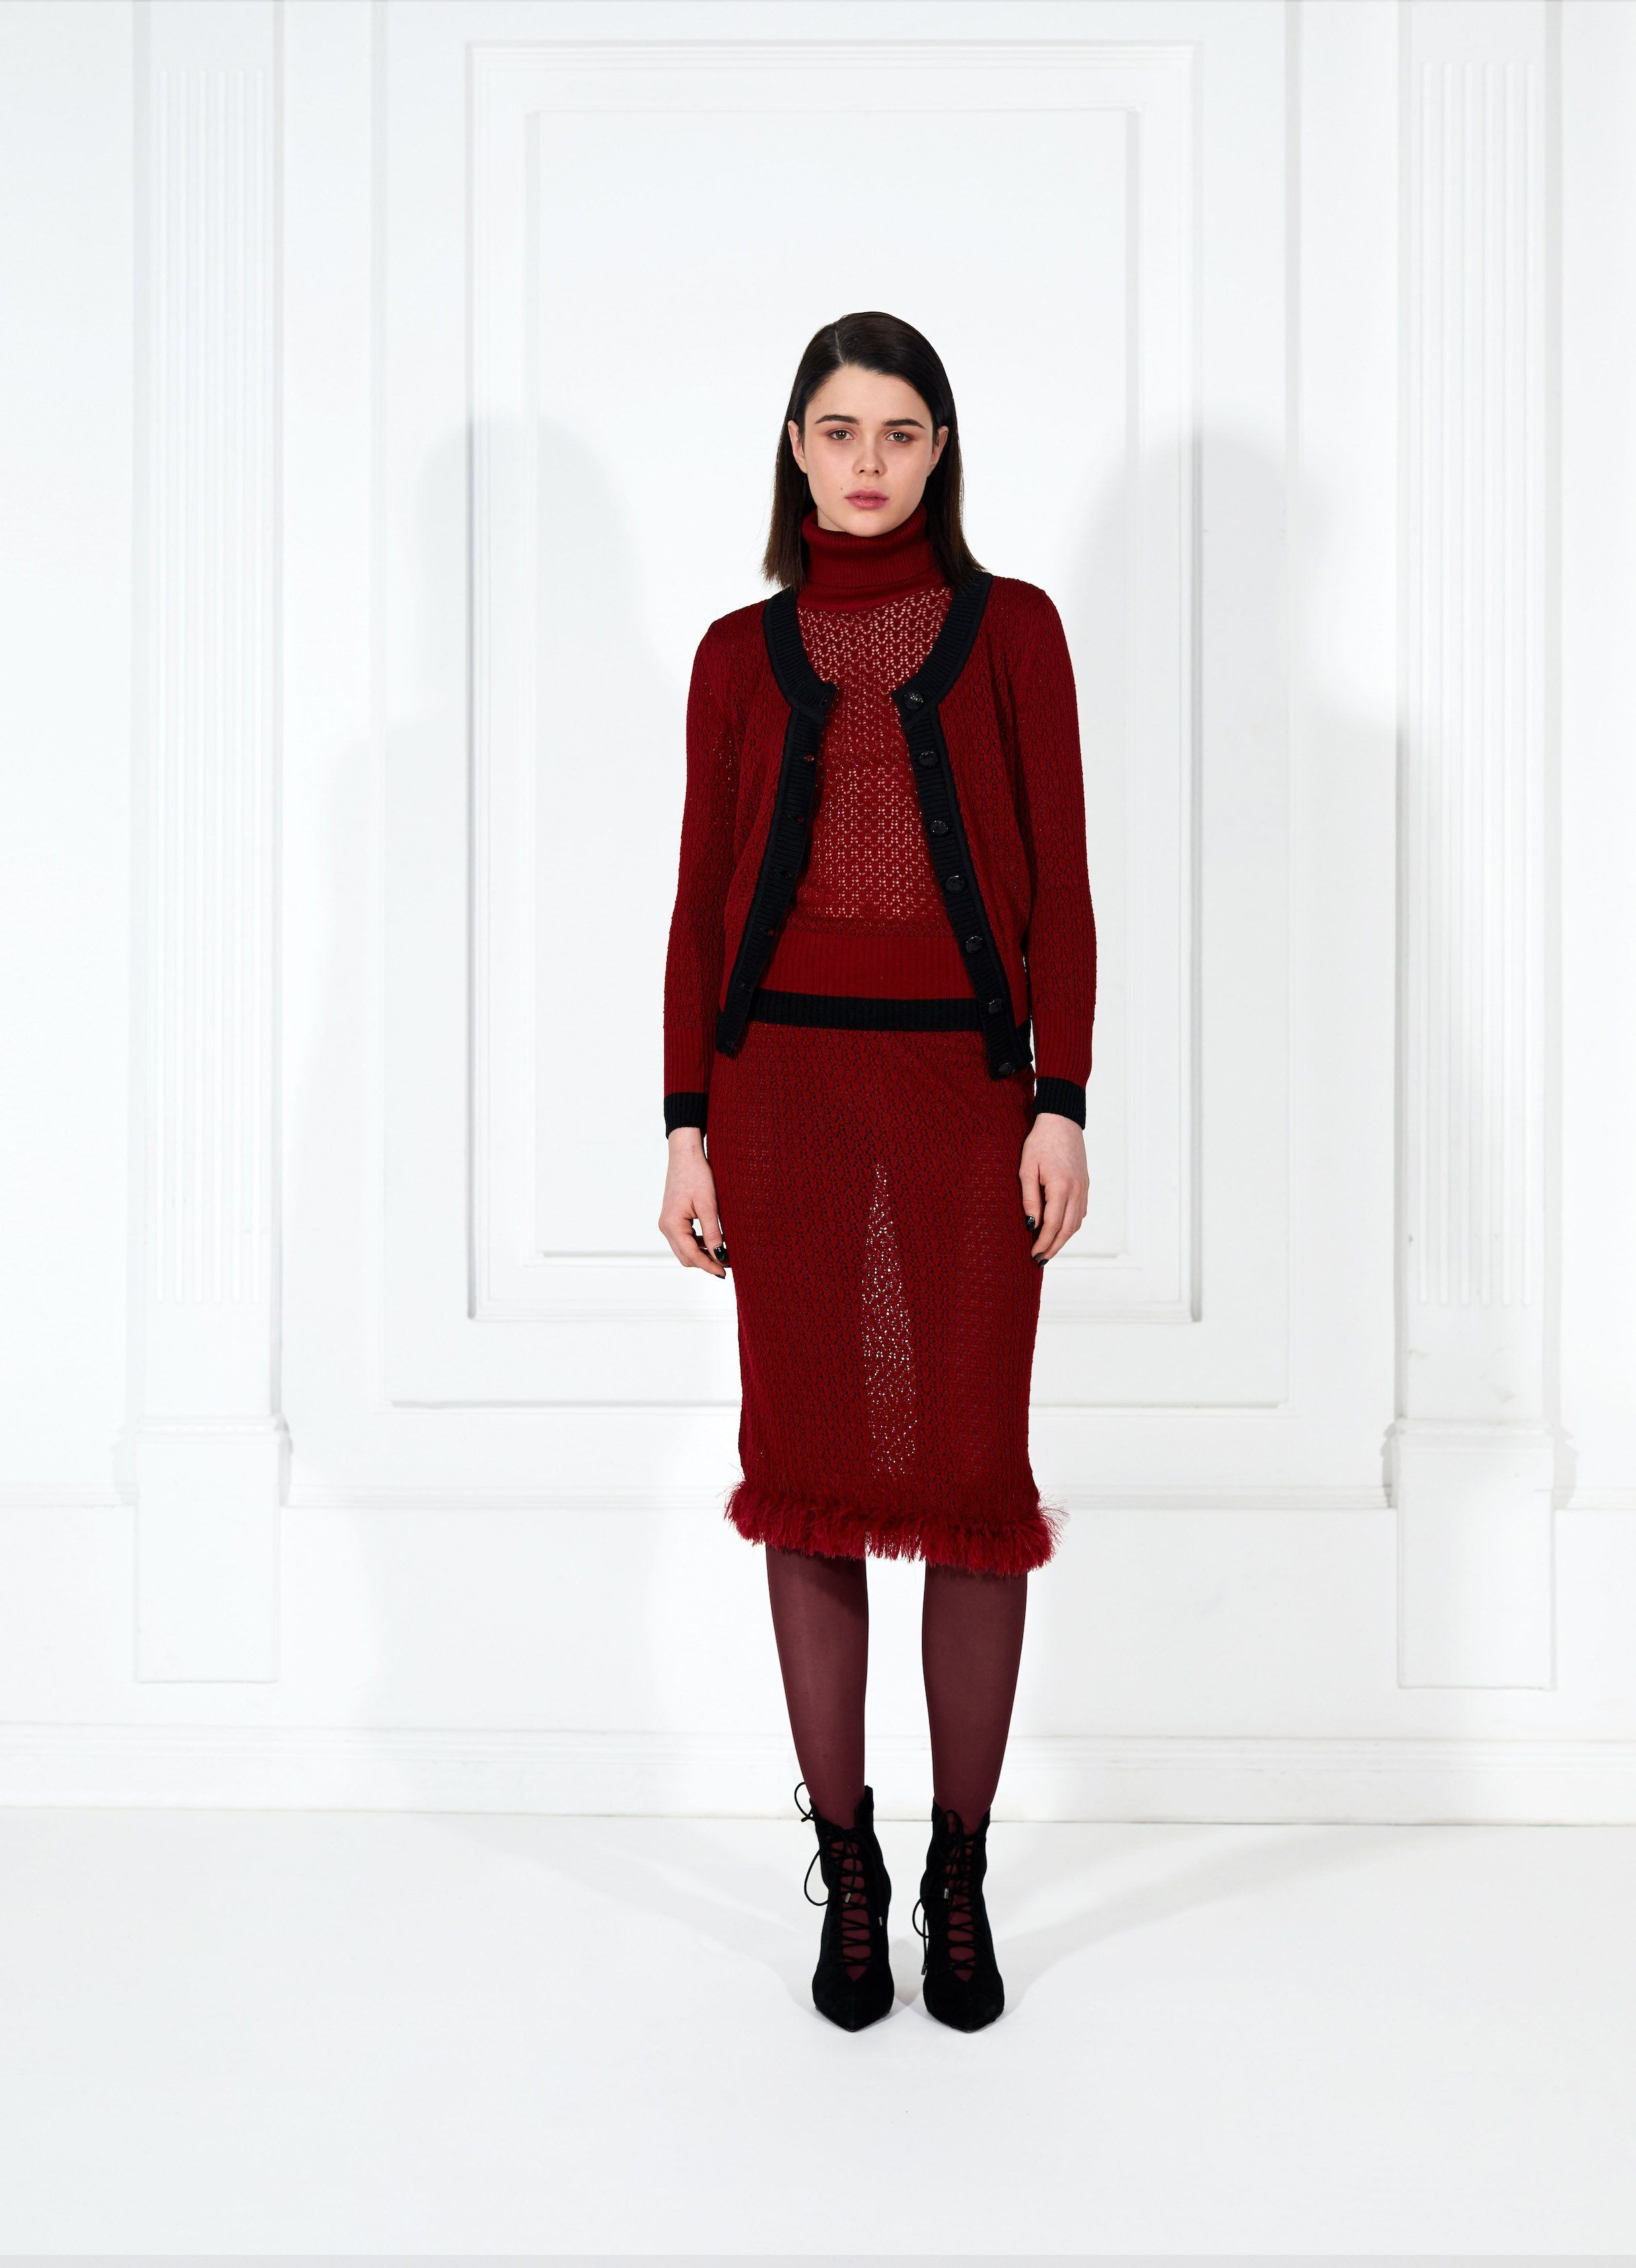 [ eclusive handmade knitting ], [ womens clothing], [luxury clothing], [ by andreeva], [luxury online store]